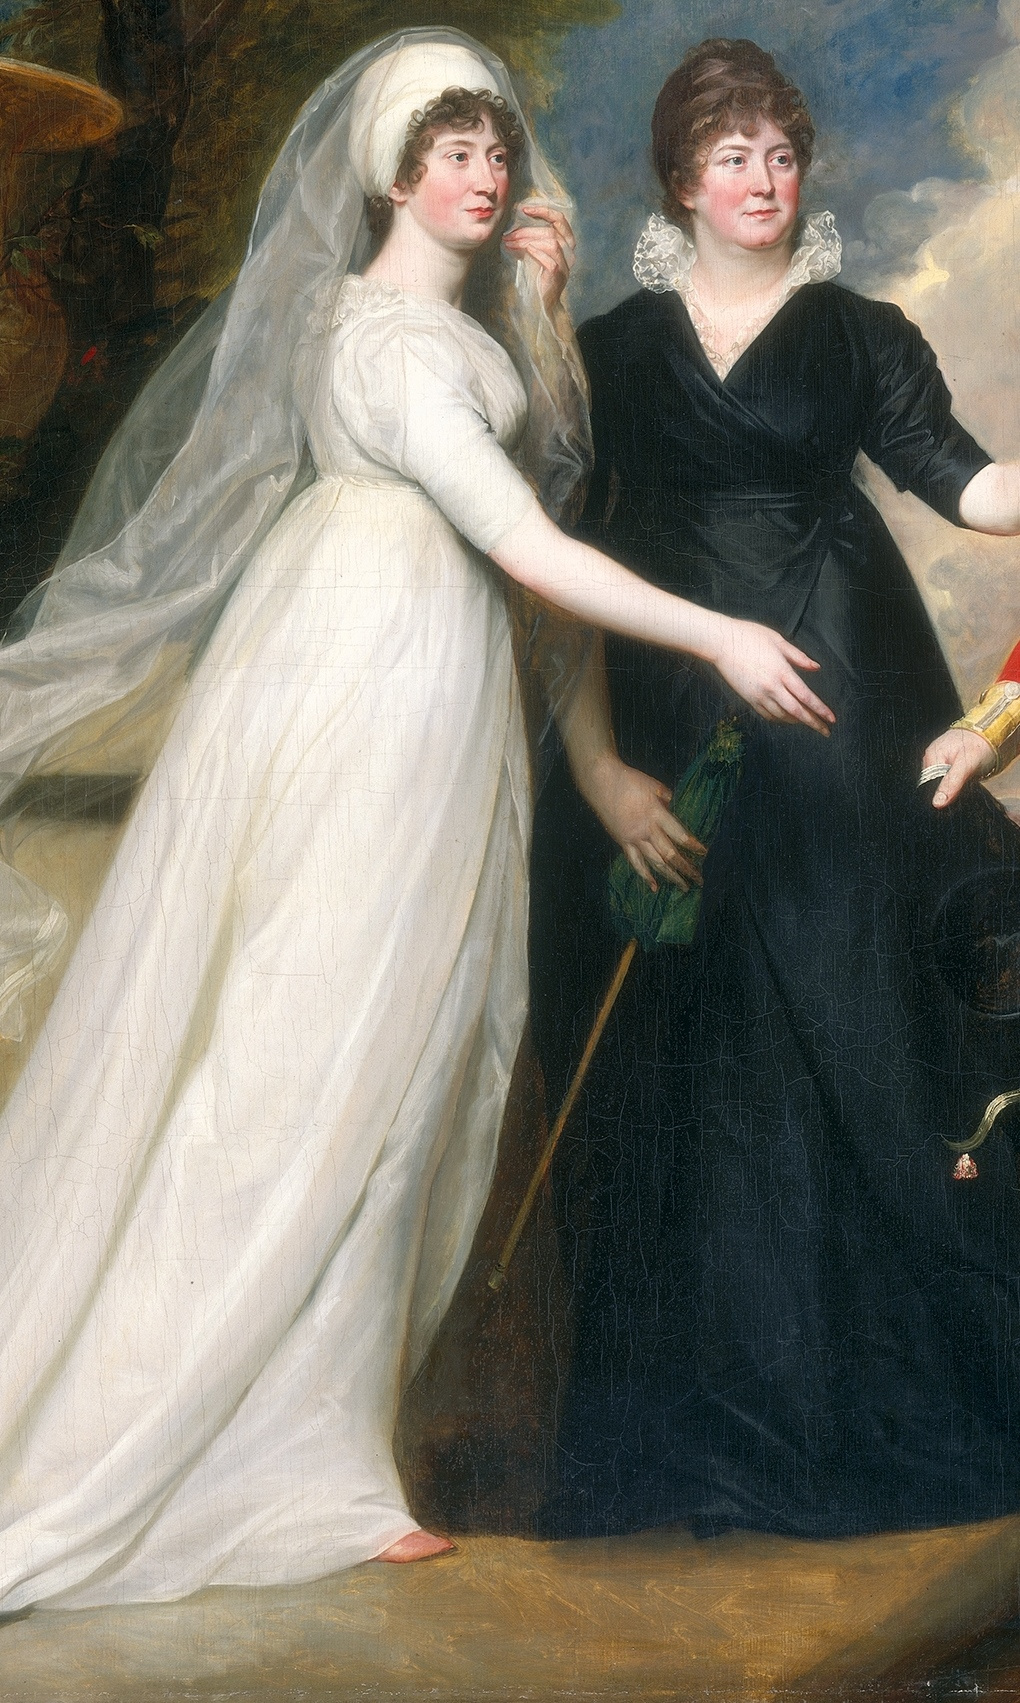 John Singleton Copley. Colonel William Fitch and his sisters Sarah and Ann Fitch. Fragment III